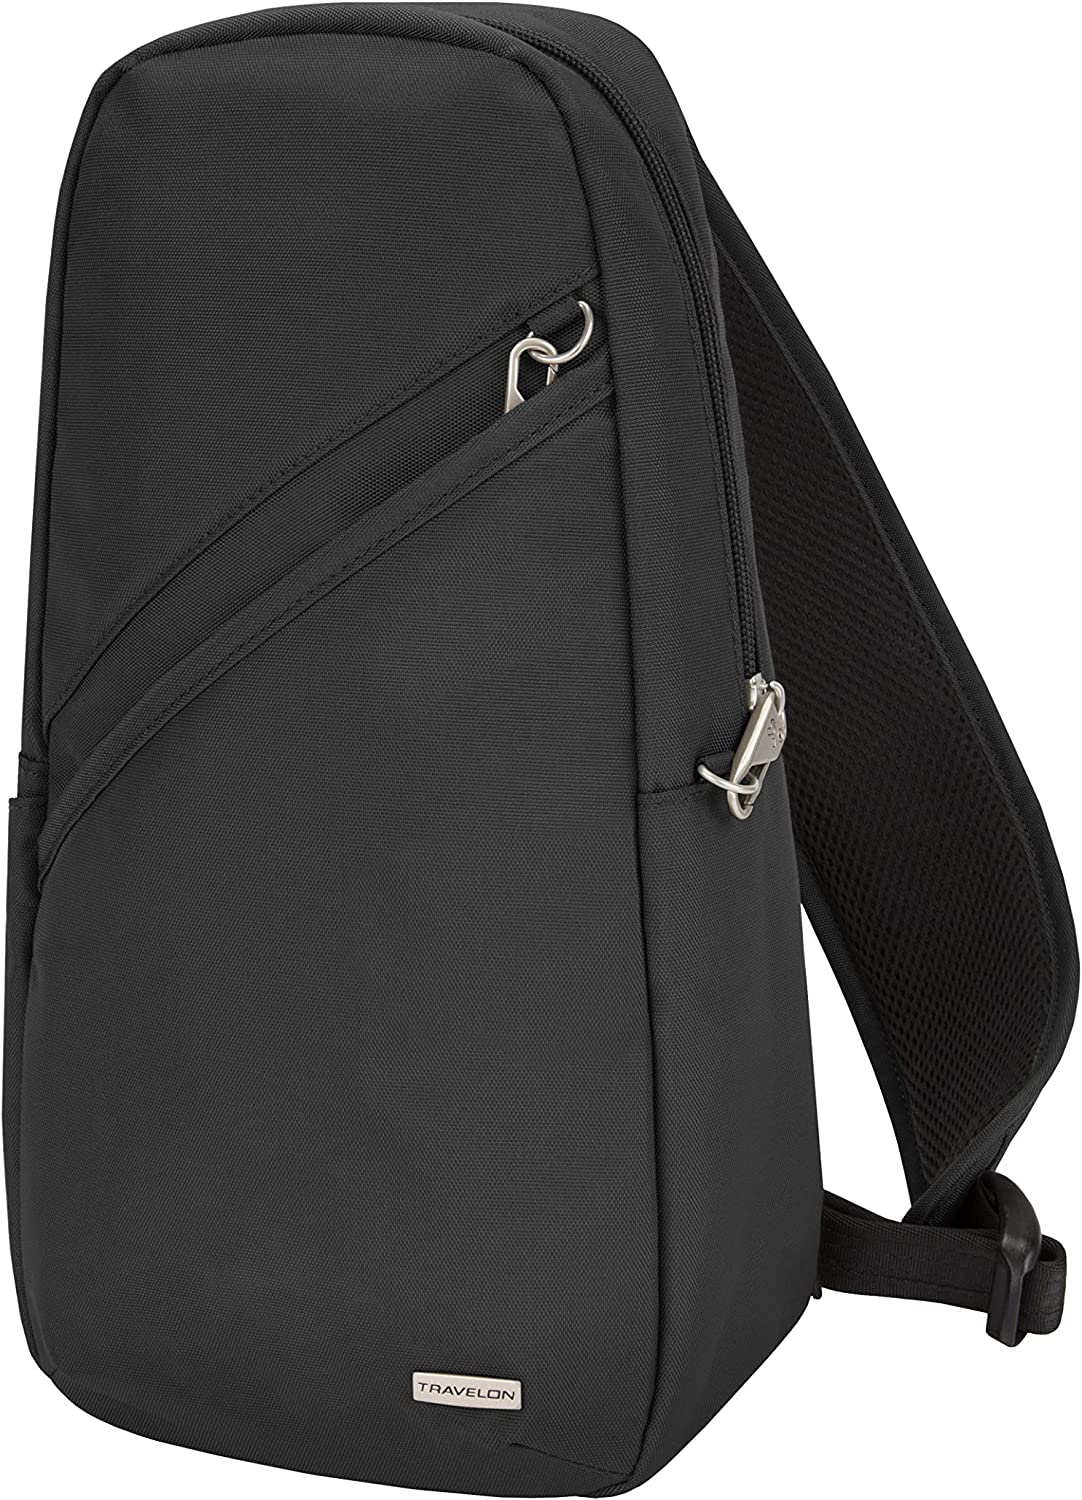 Travelon AT Classic Sling Bag, Black, One Size